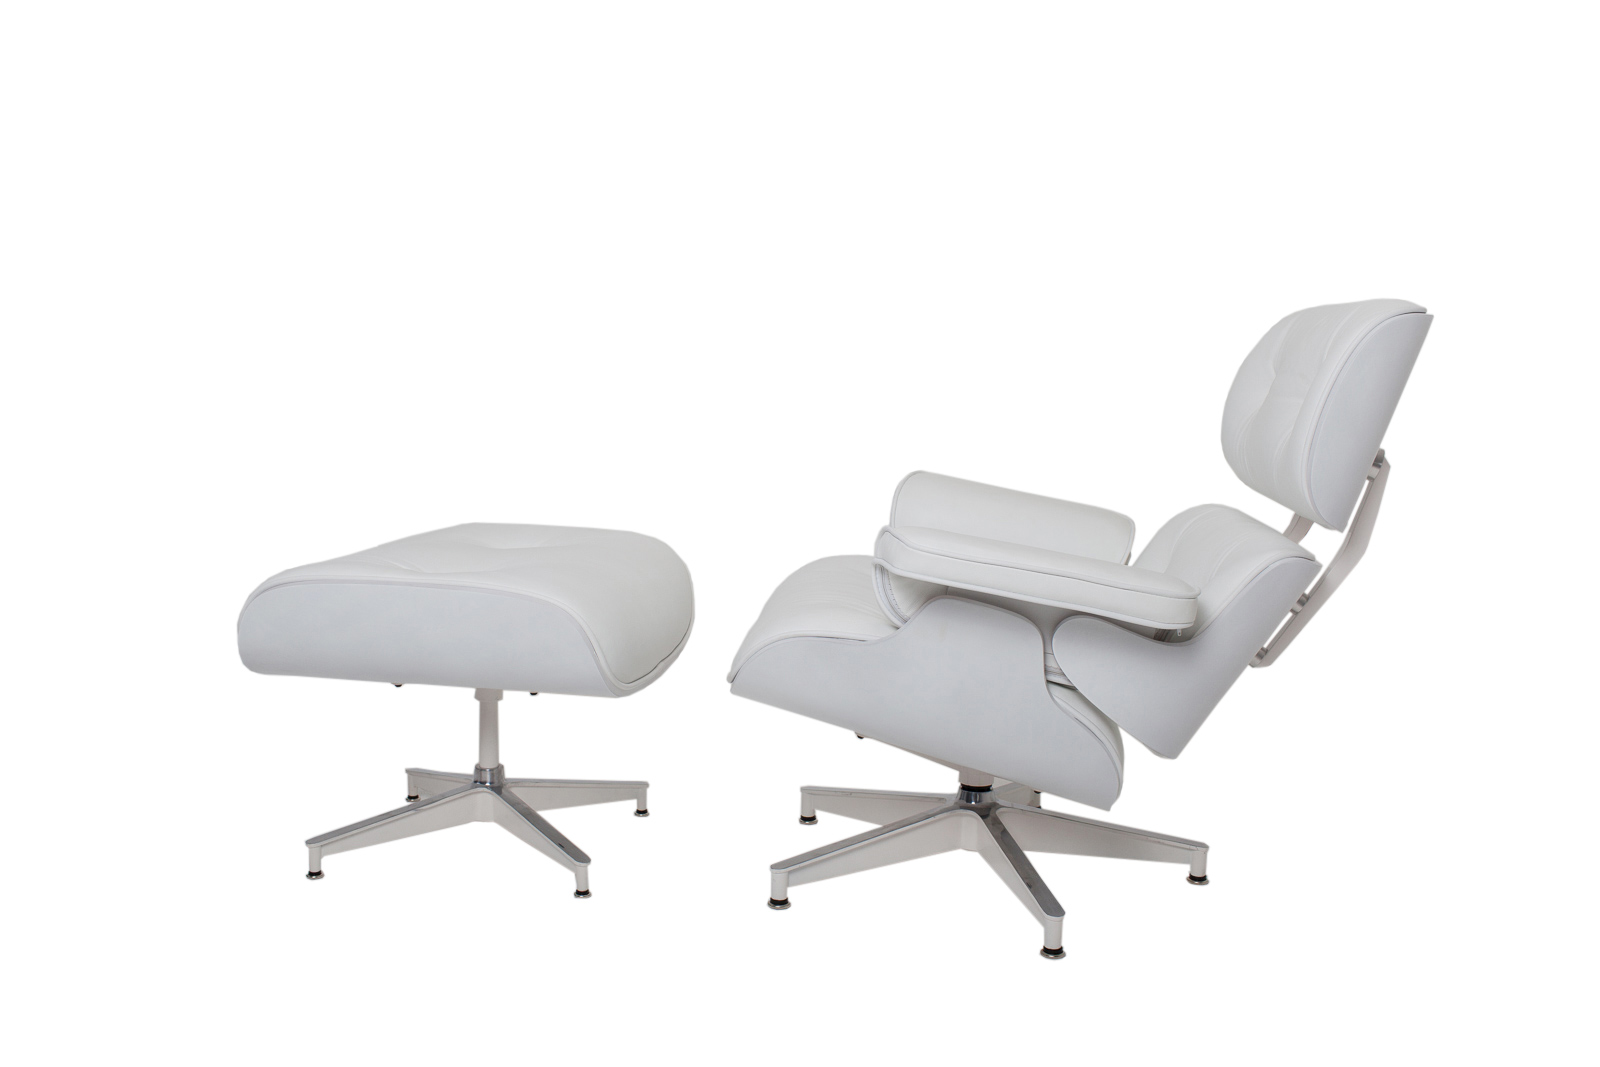 Eames Chair Replica Ebay Details About New White Leather White Wood Eames Style Lounge Chair Ottoman Set